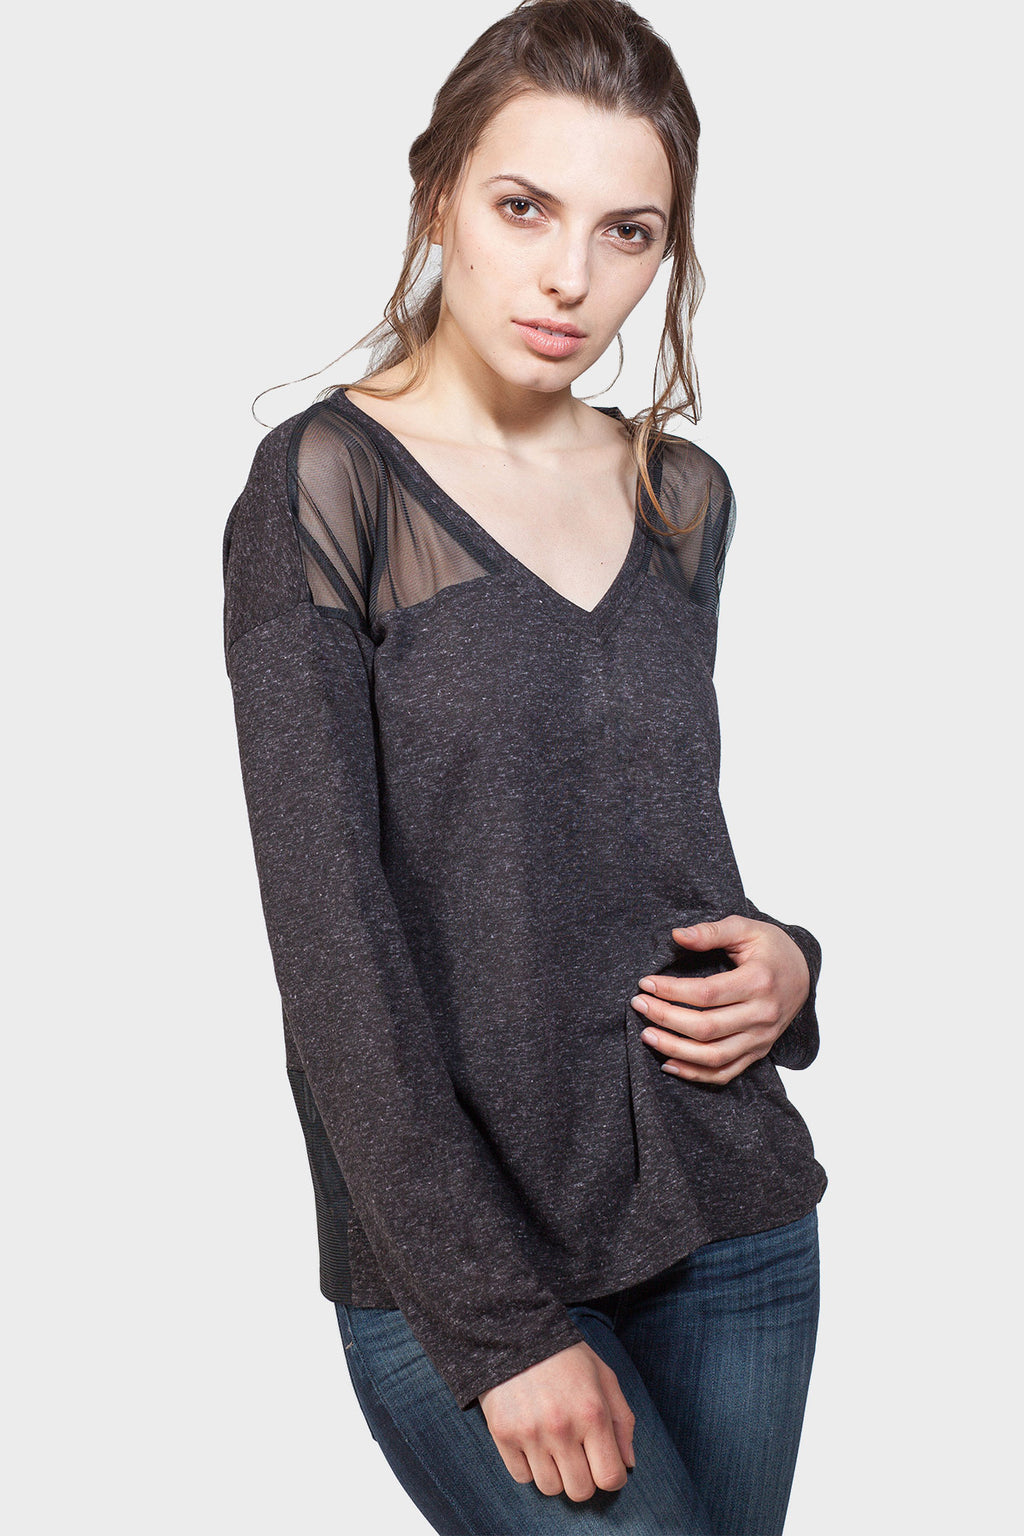 337 BRAND Women's Basic Sweatshirt with Mesh Details